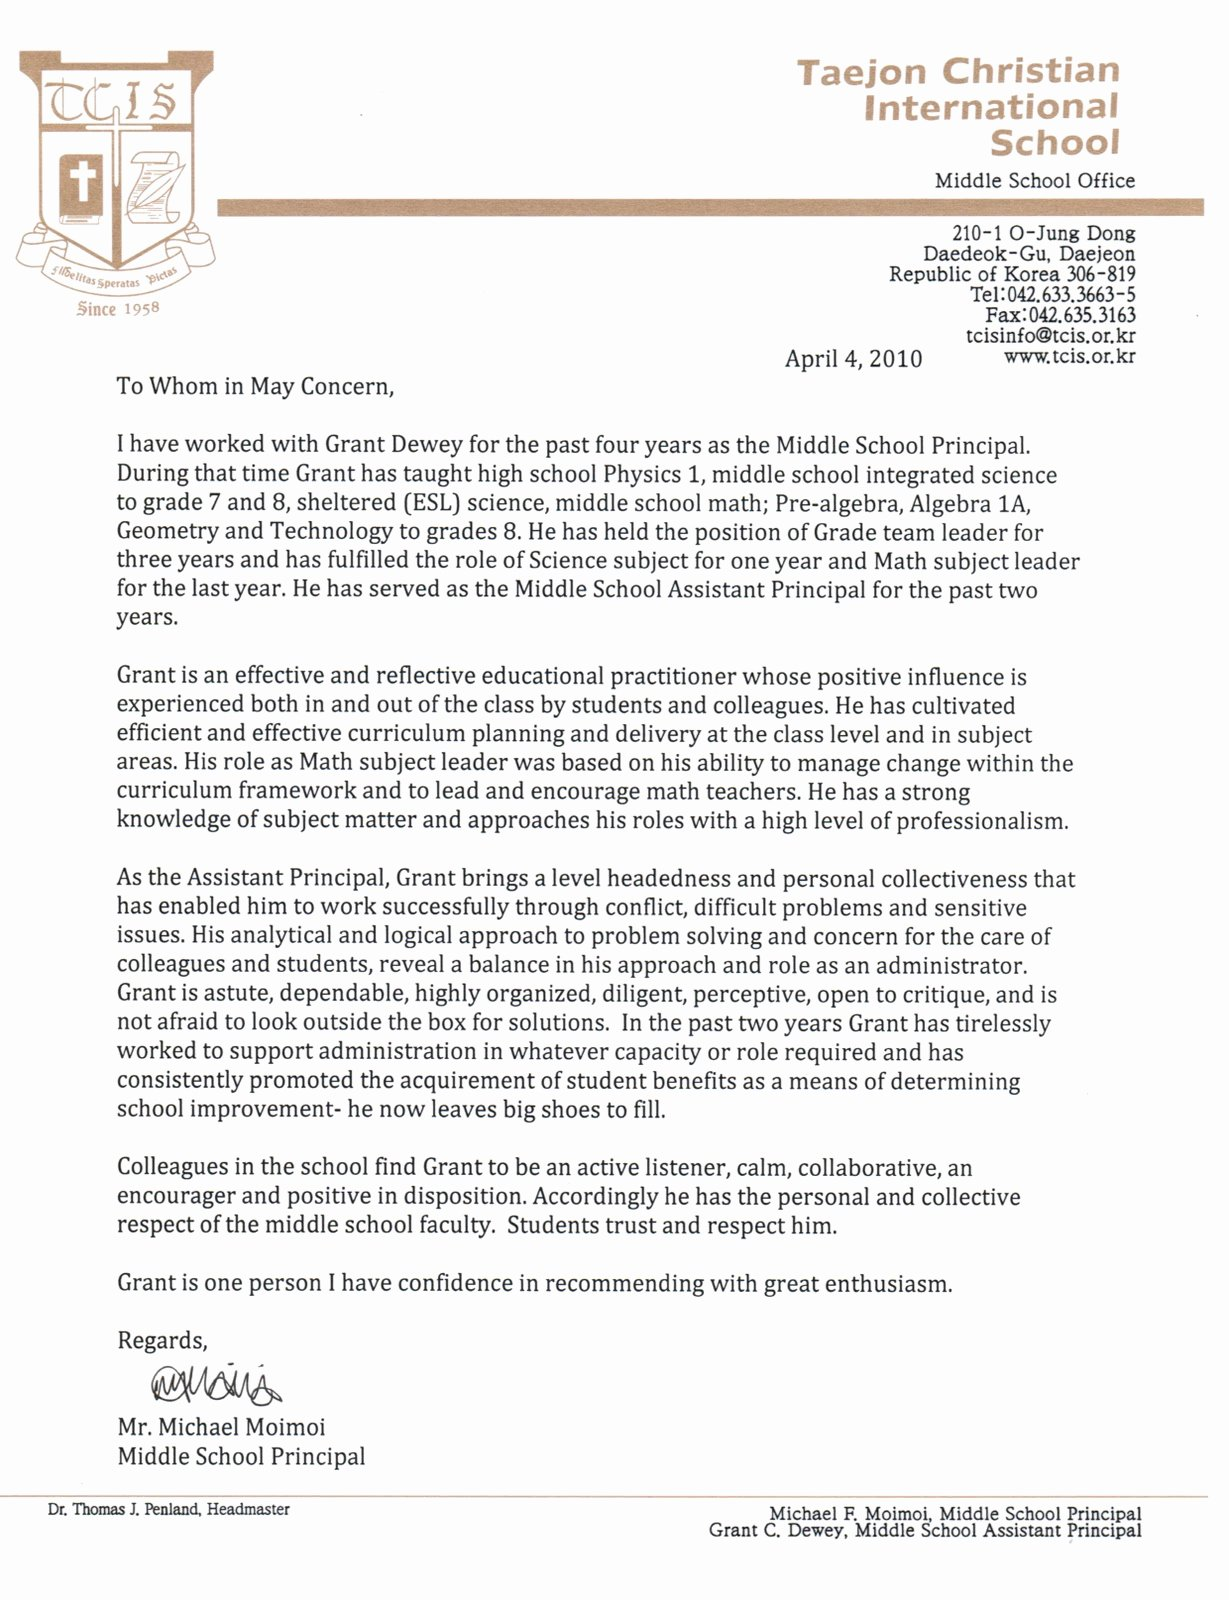 Letter Of Recommendation for Principals Unique Dynamic Dewey Systems Letter Of Reference Principal at Tcis